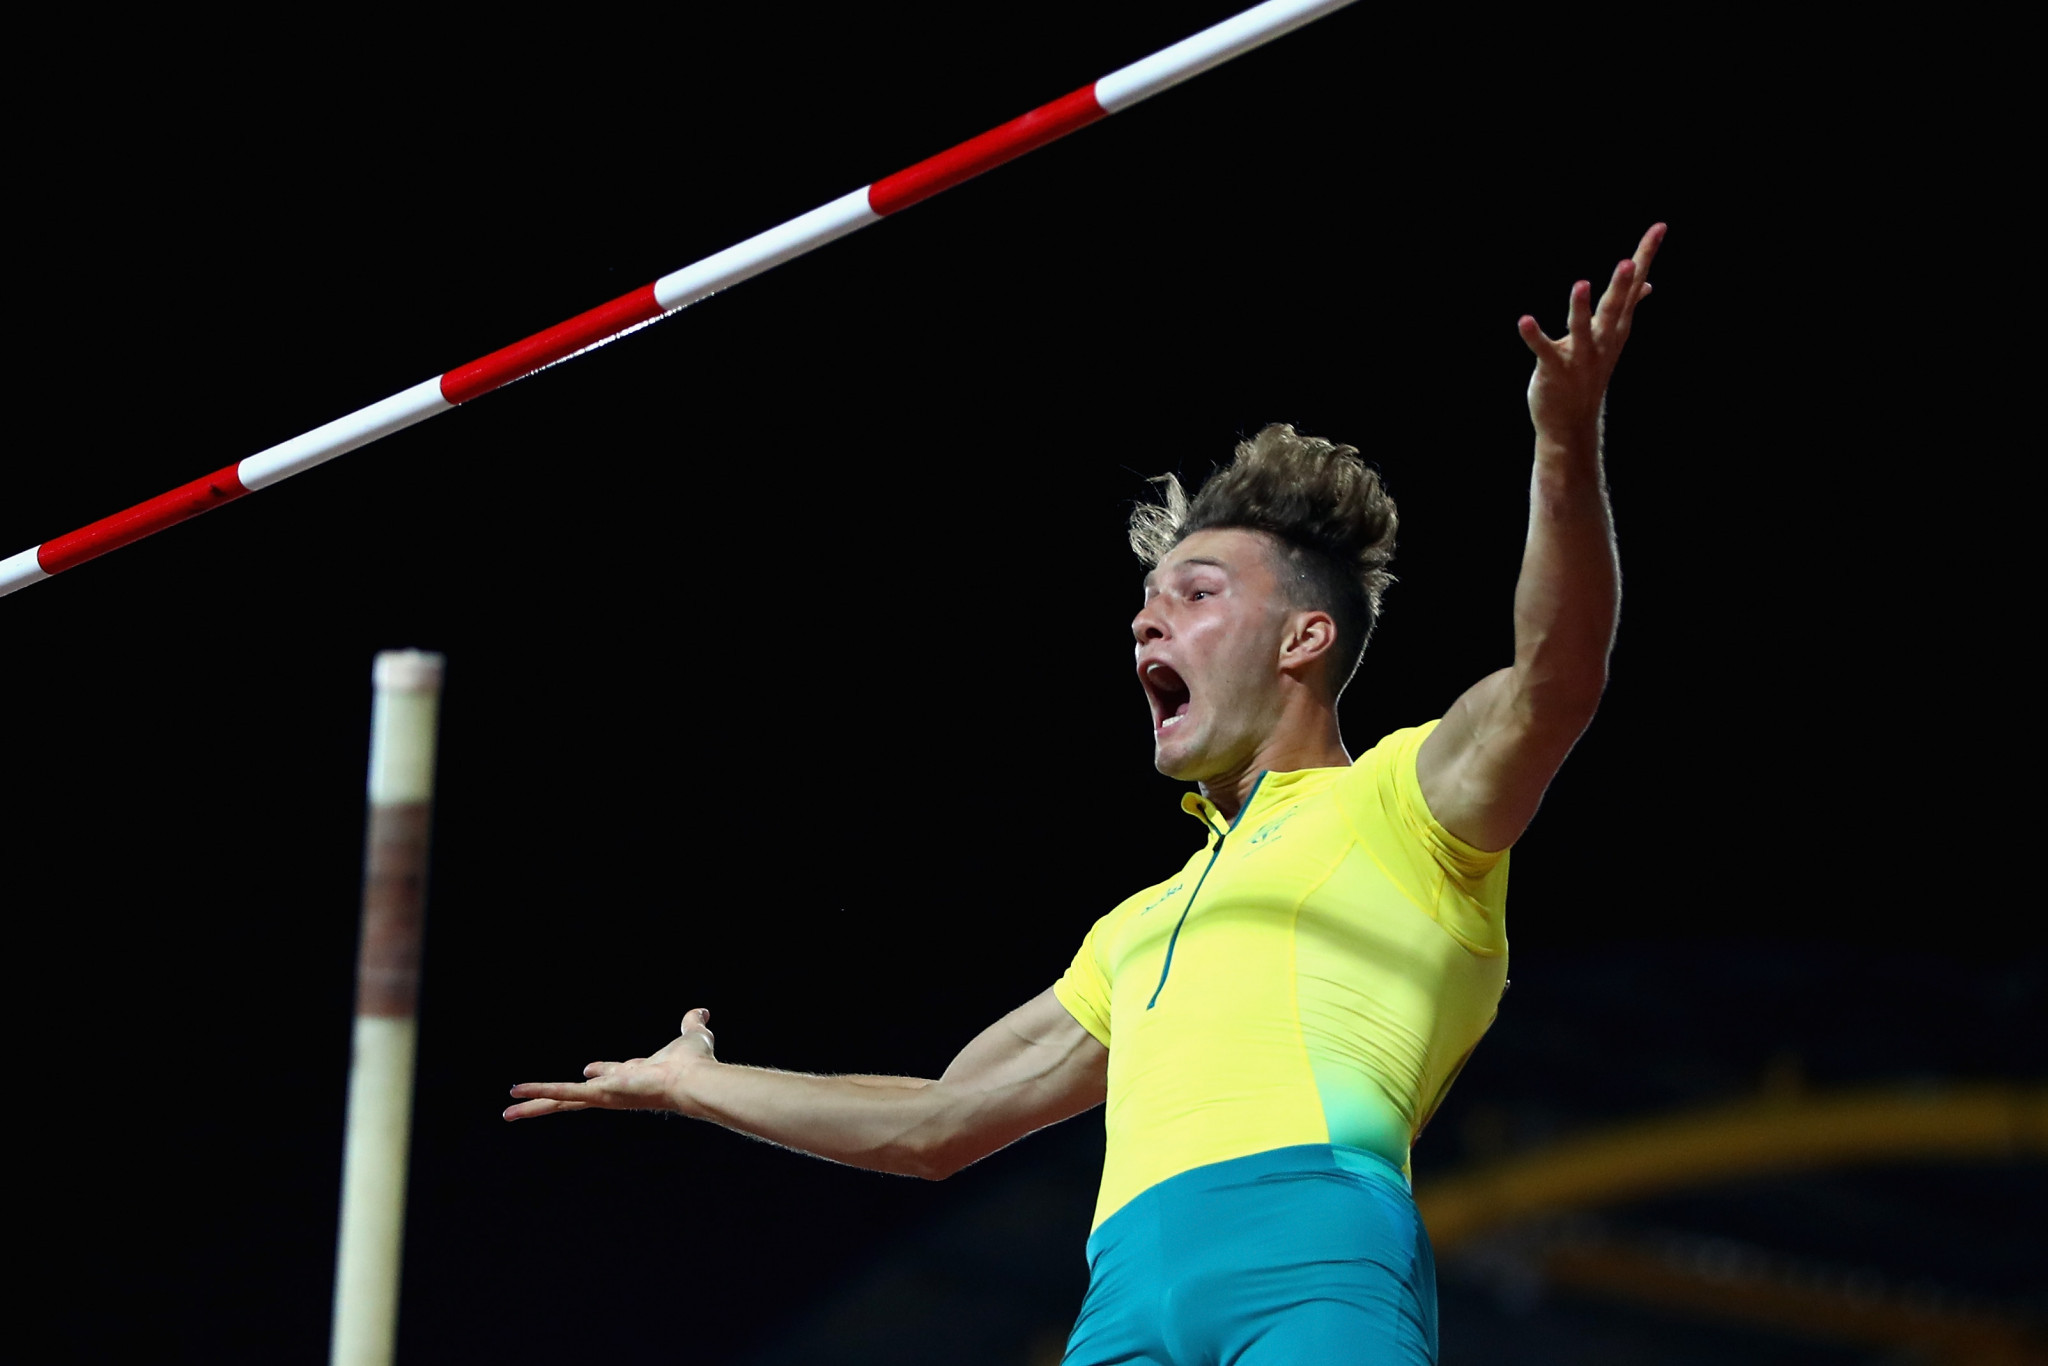 Kurtis Marschall won the men's pole vault final for the host nation ©Getty Images